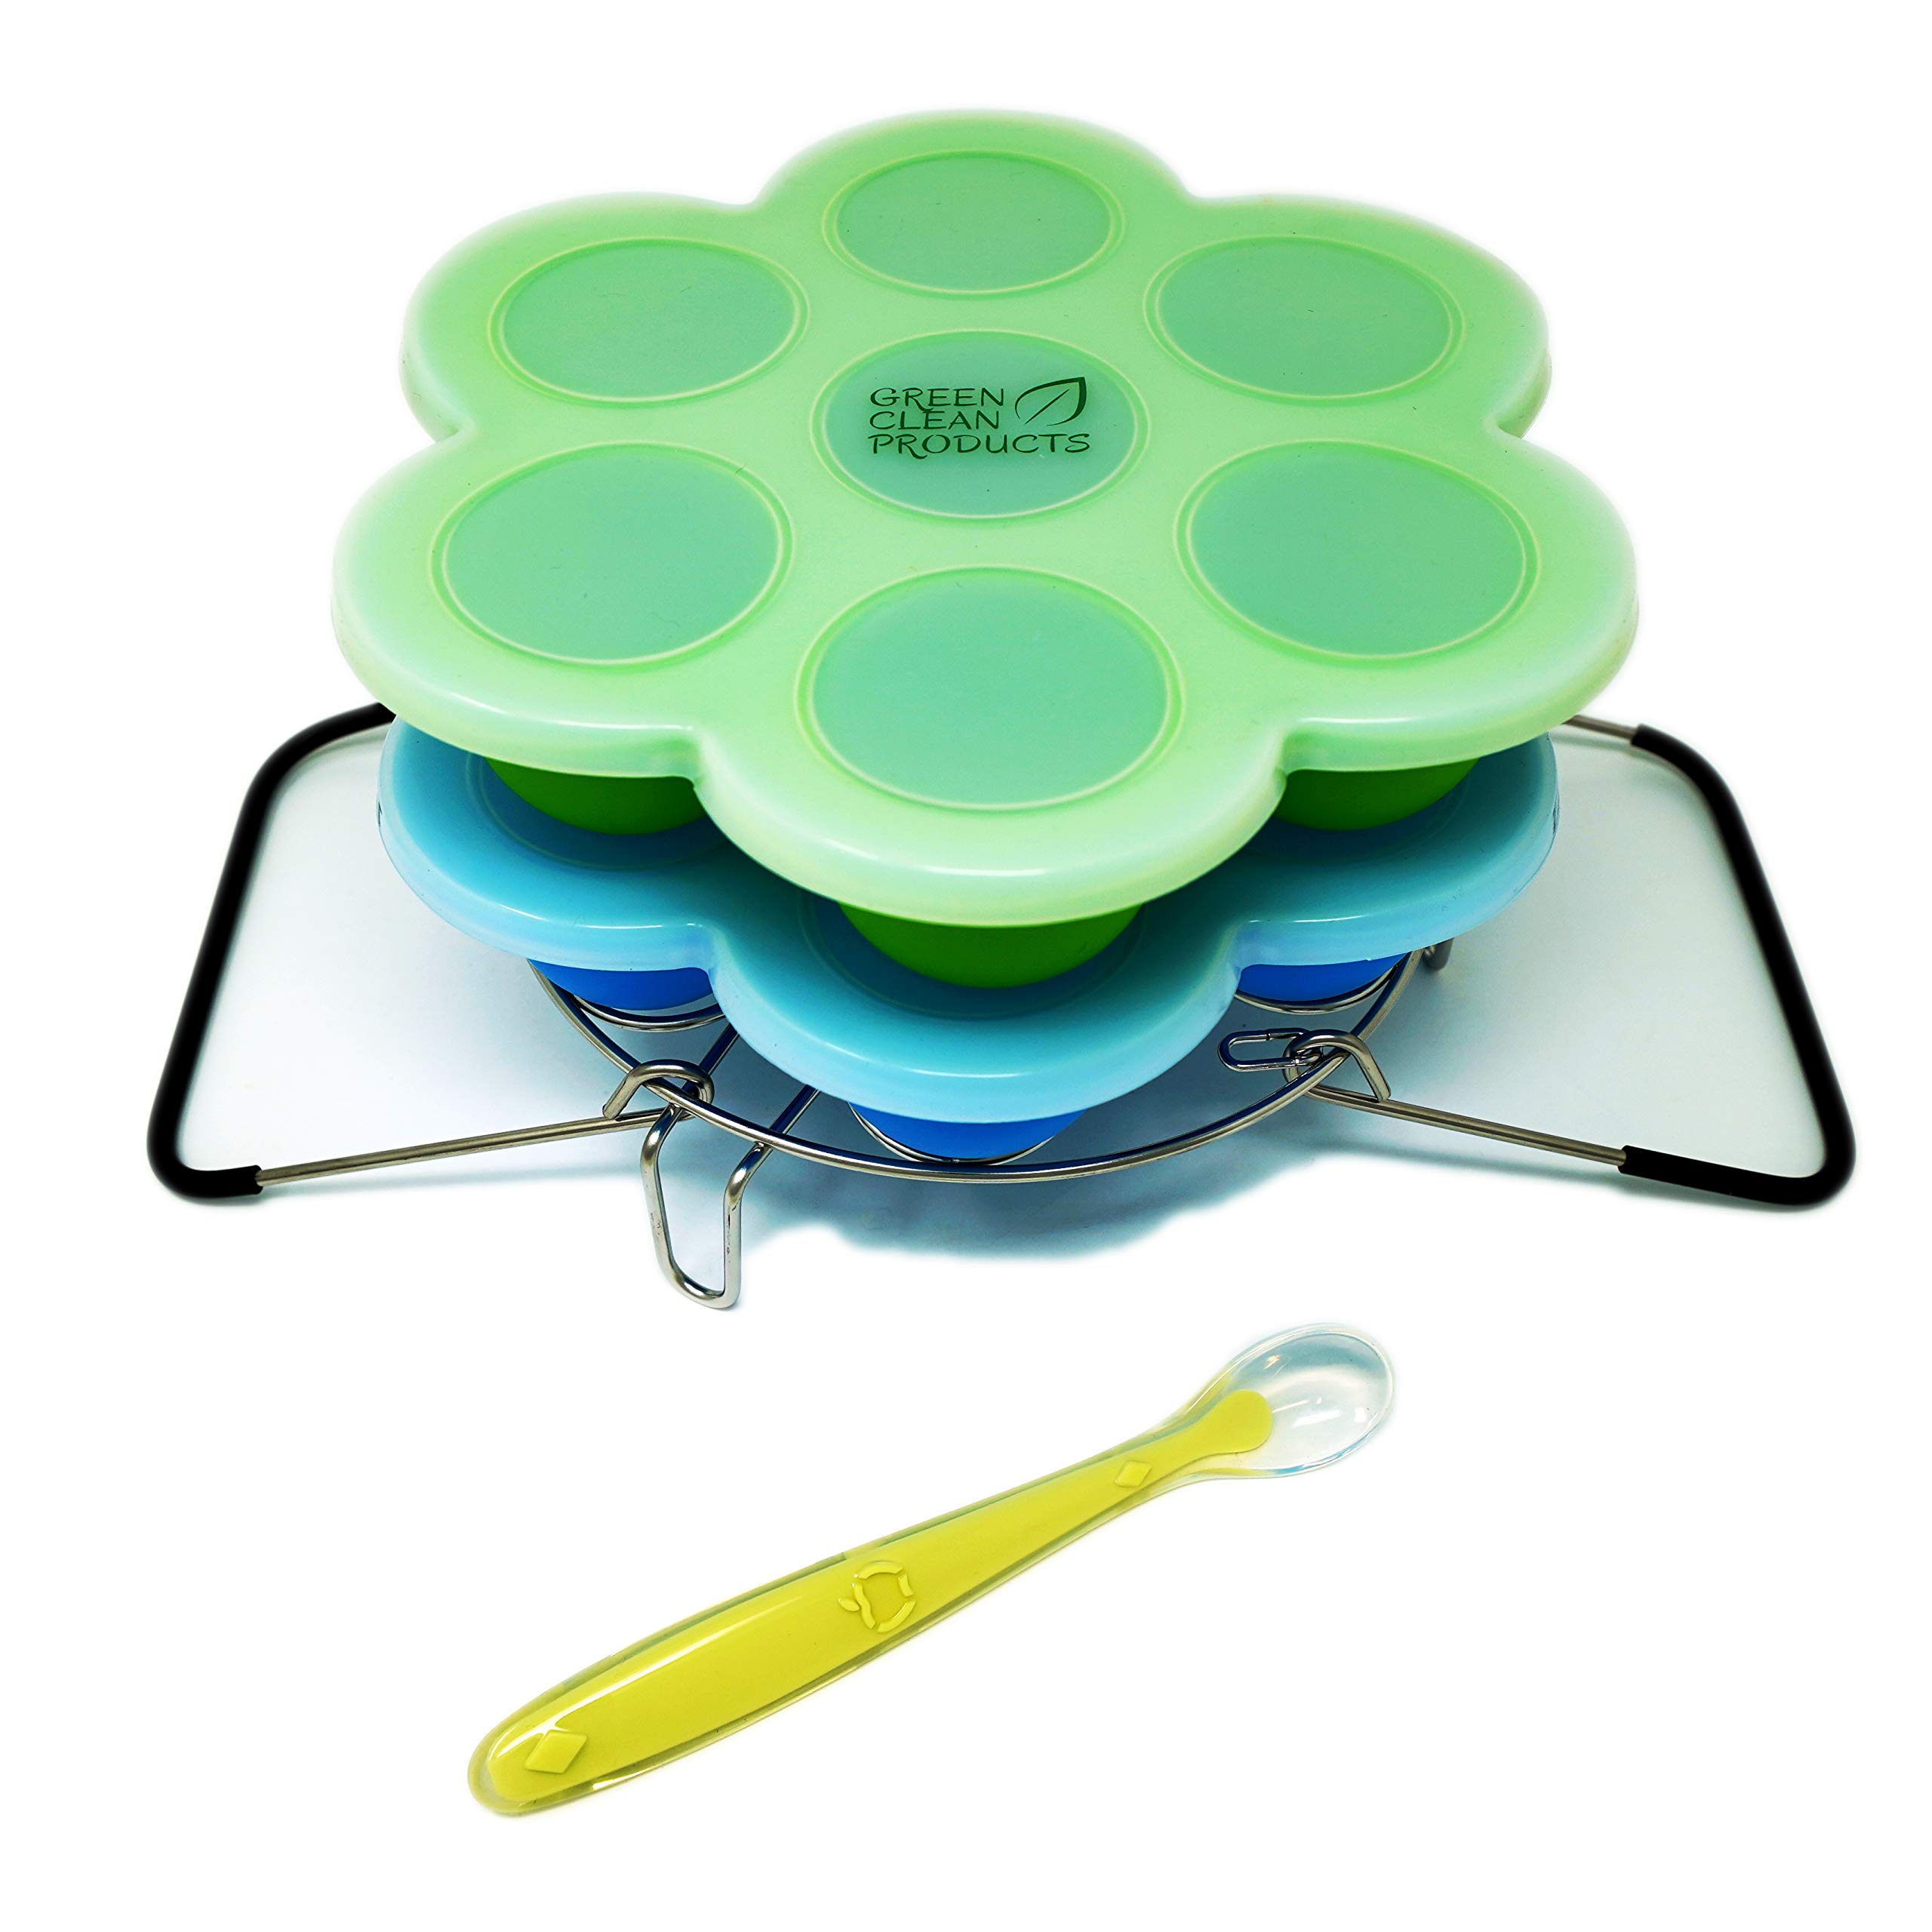 2 Silicone mold egg bites and steamer rack with handles | 6 & 8 qt instant pot & pressure cooker accessory | Reusable food storage & freezer tray with lid | 2 sets, 2 lids, 1 spoon, free e-cookbook